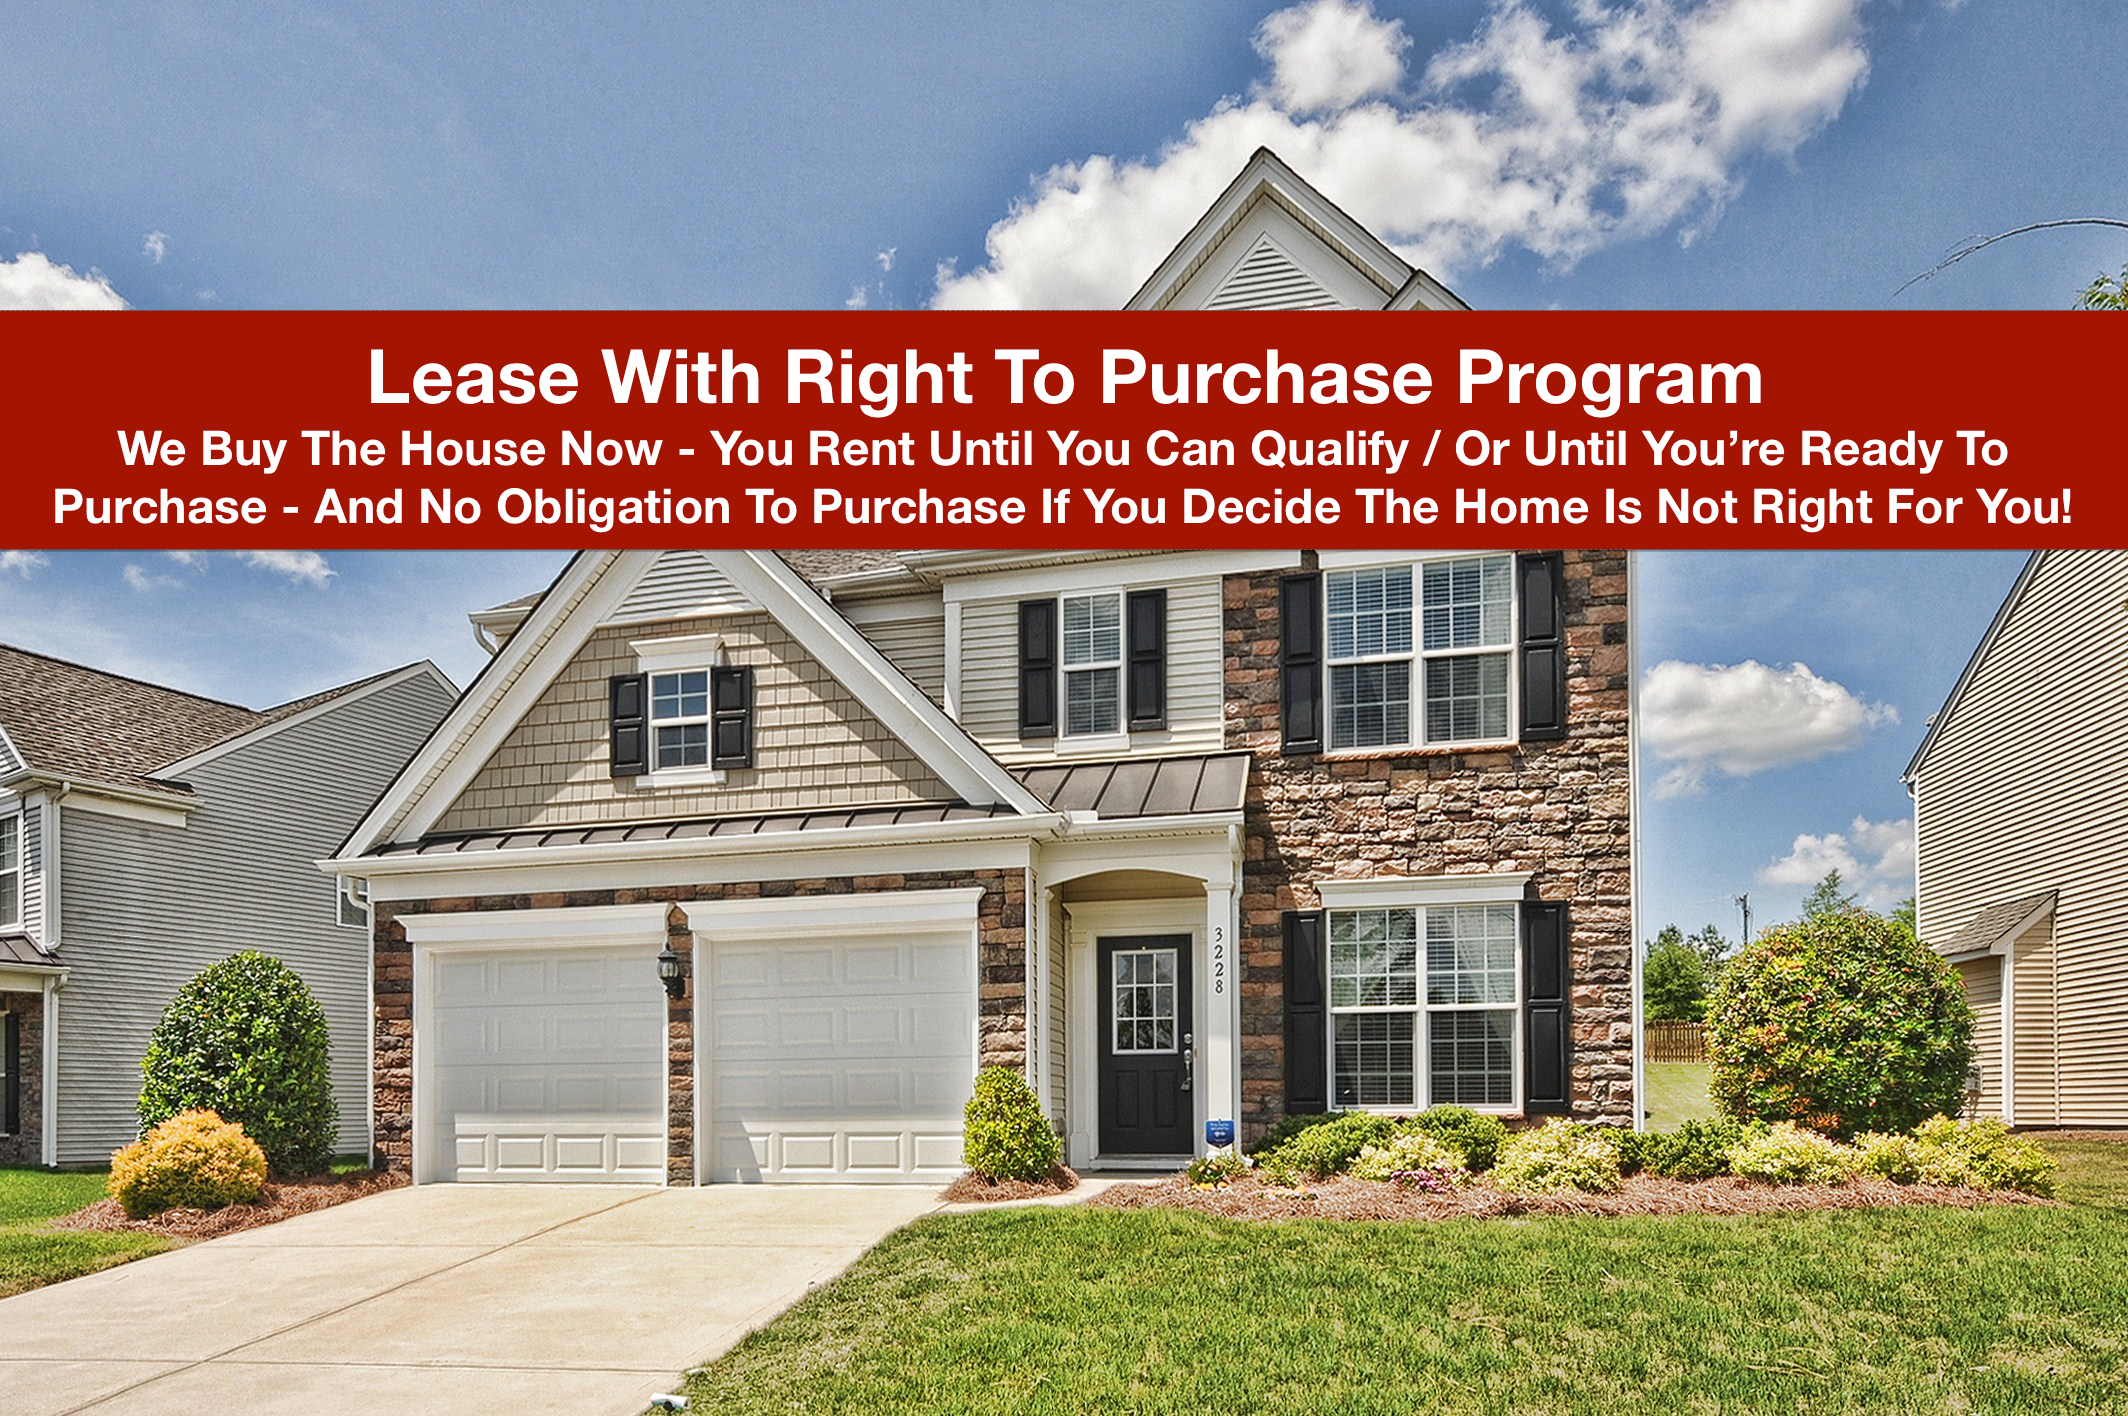 Lease Purchase Program Charlotte NC - RE/MAX Metro Realty Josh Fretz